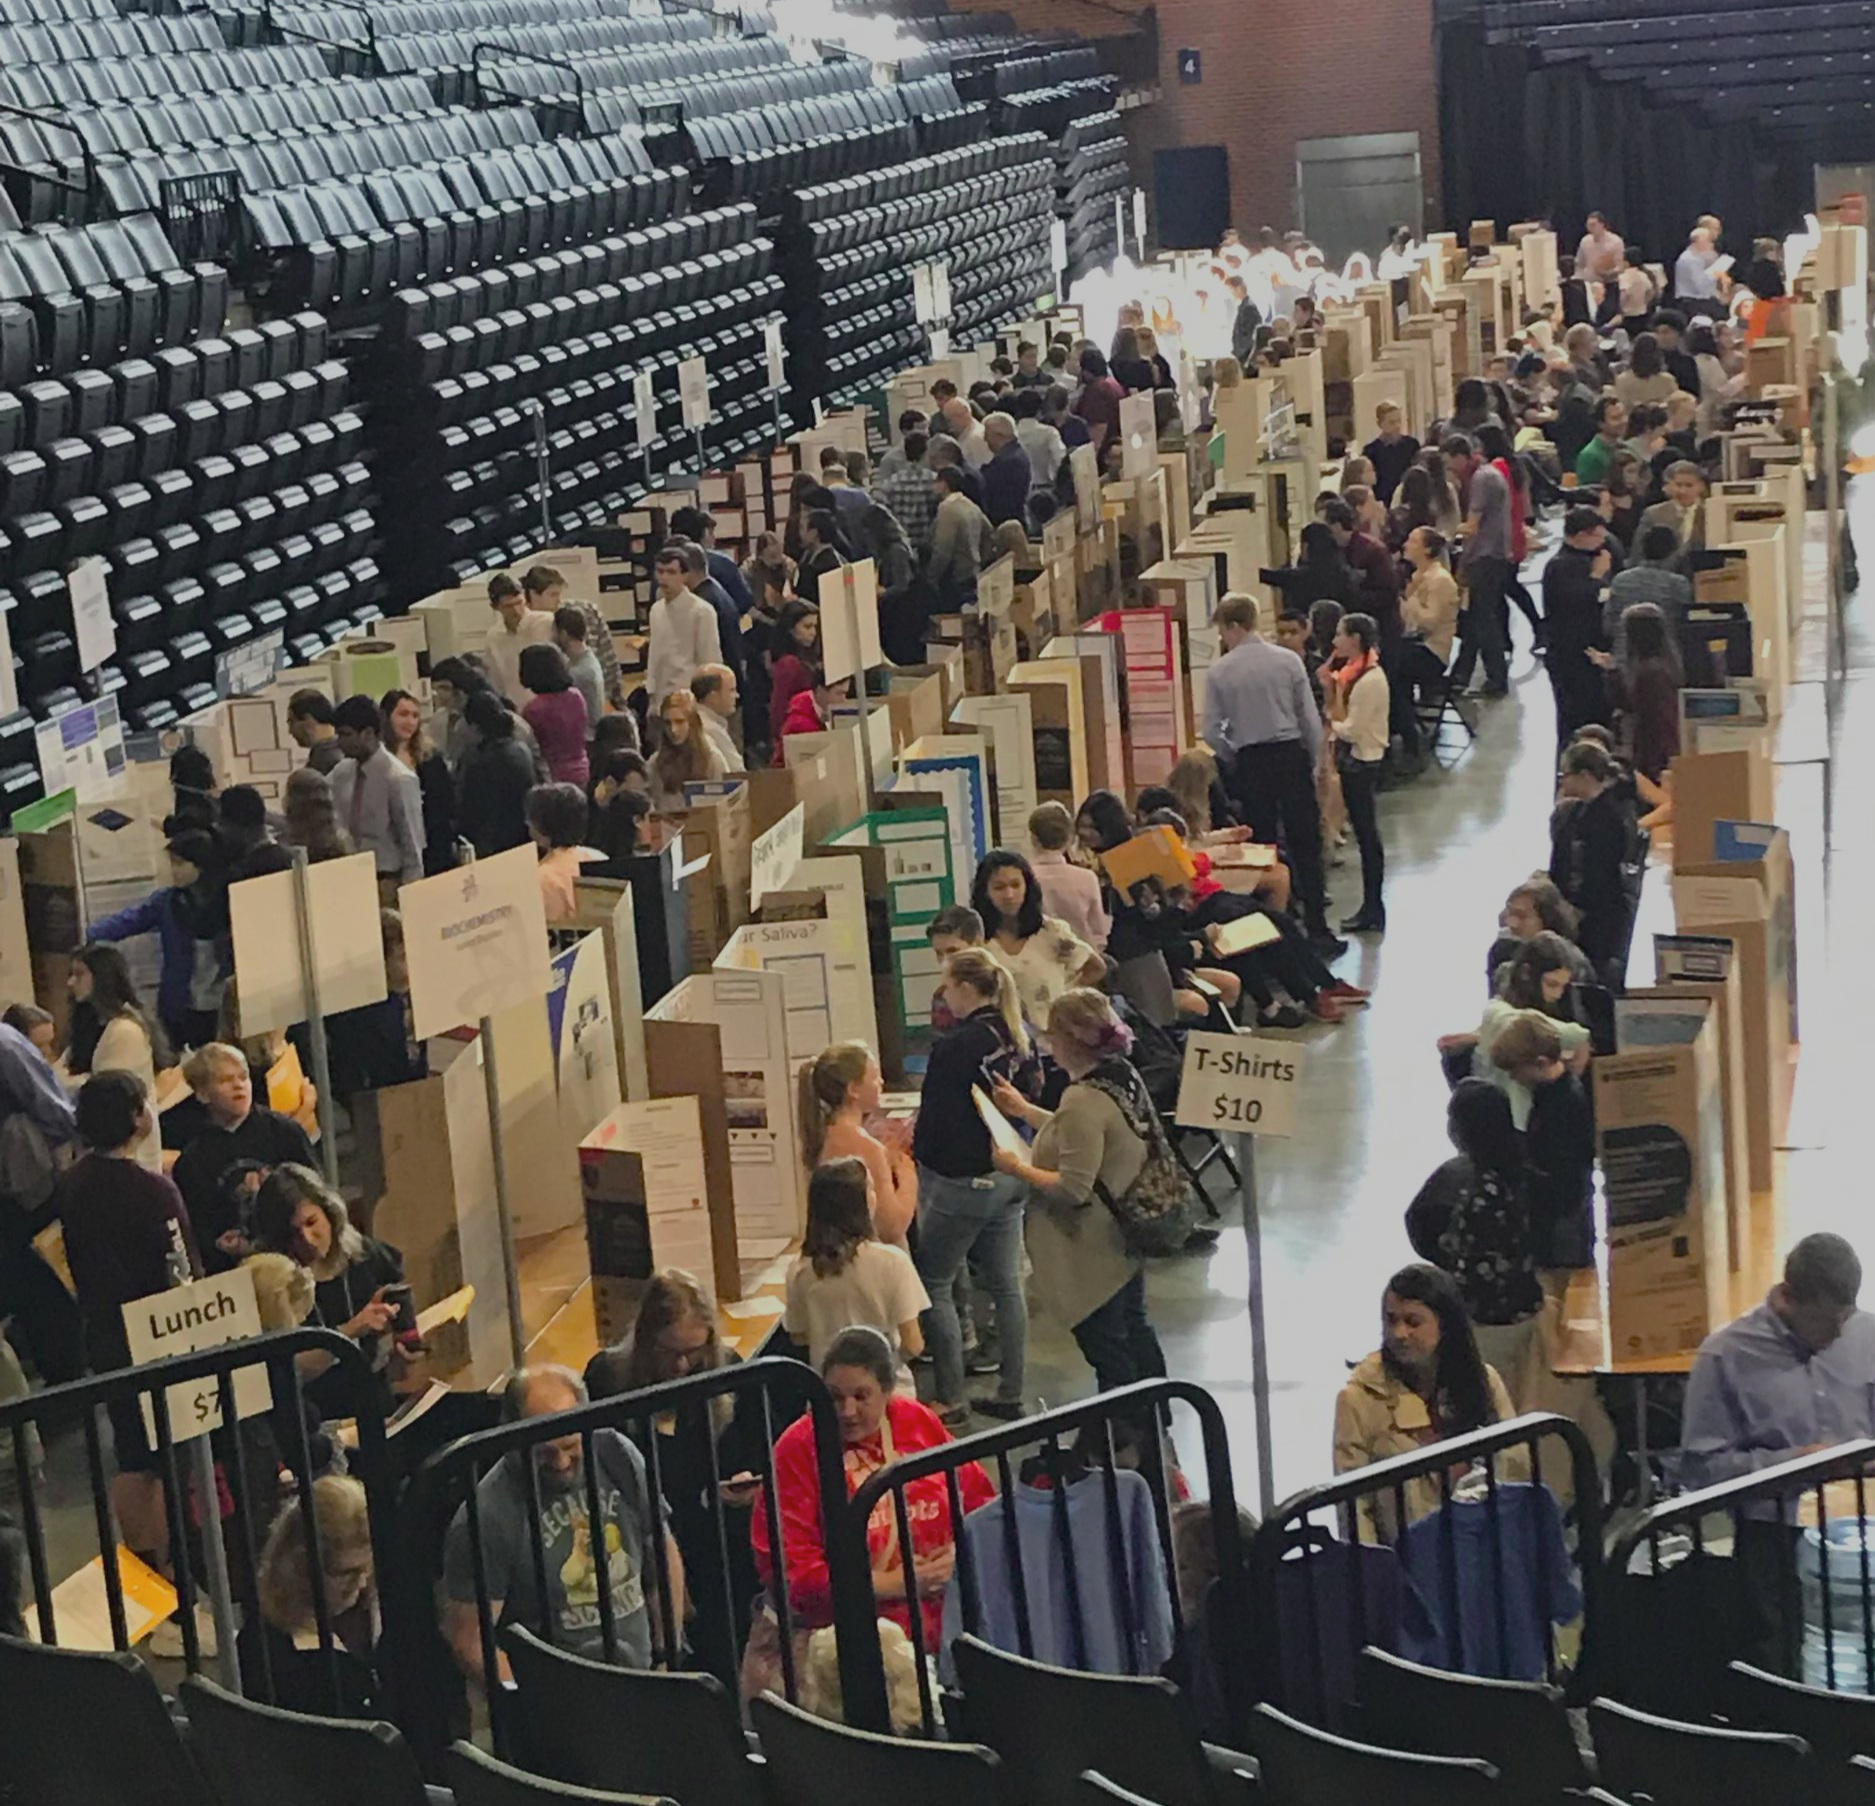 ScienceFair2019.jpg